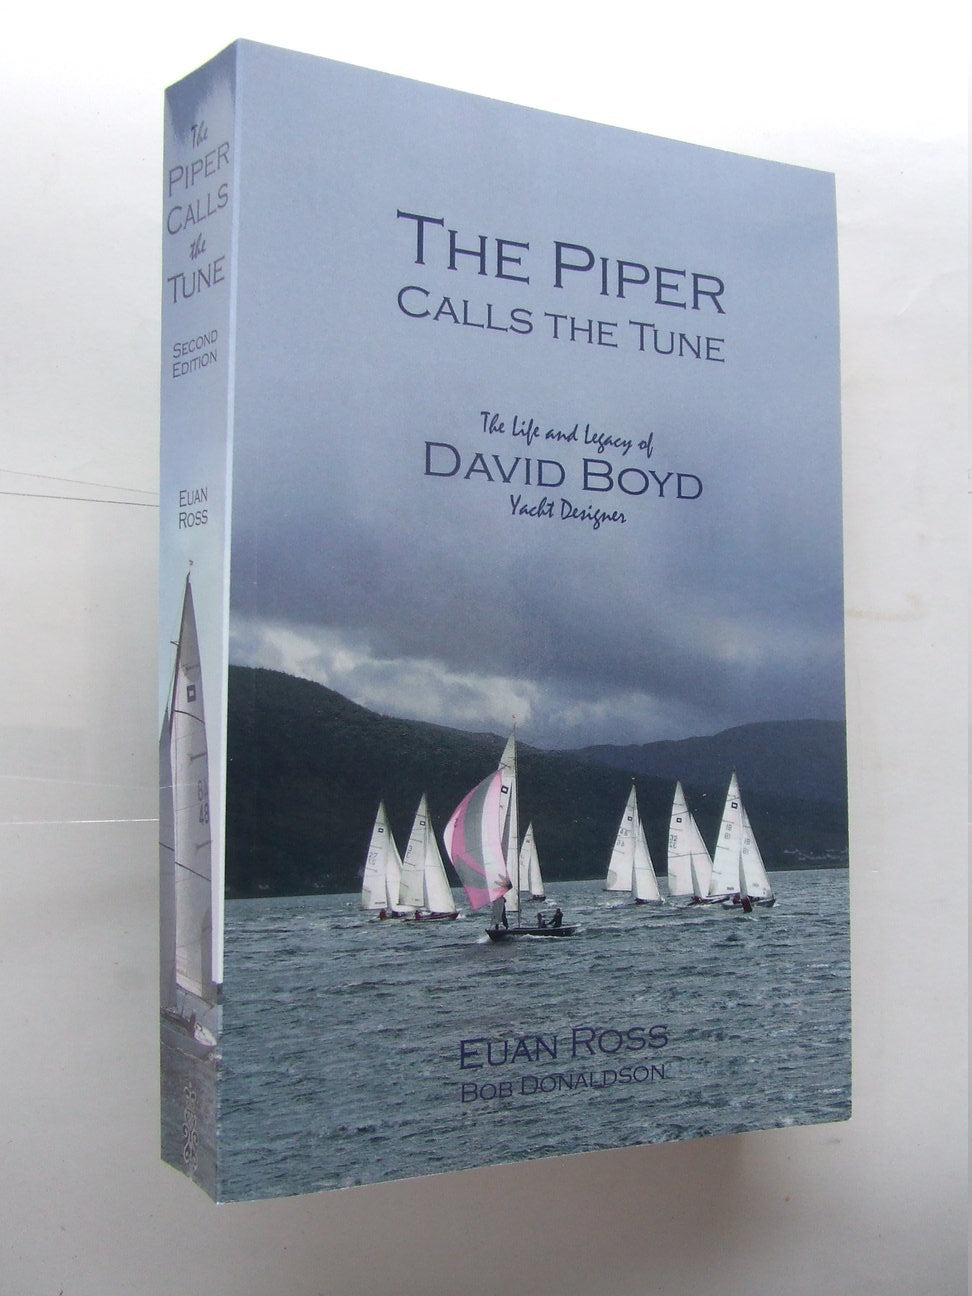 The Piper Calls the Tune, the life and legacy of David Boyd, yacht designer